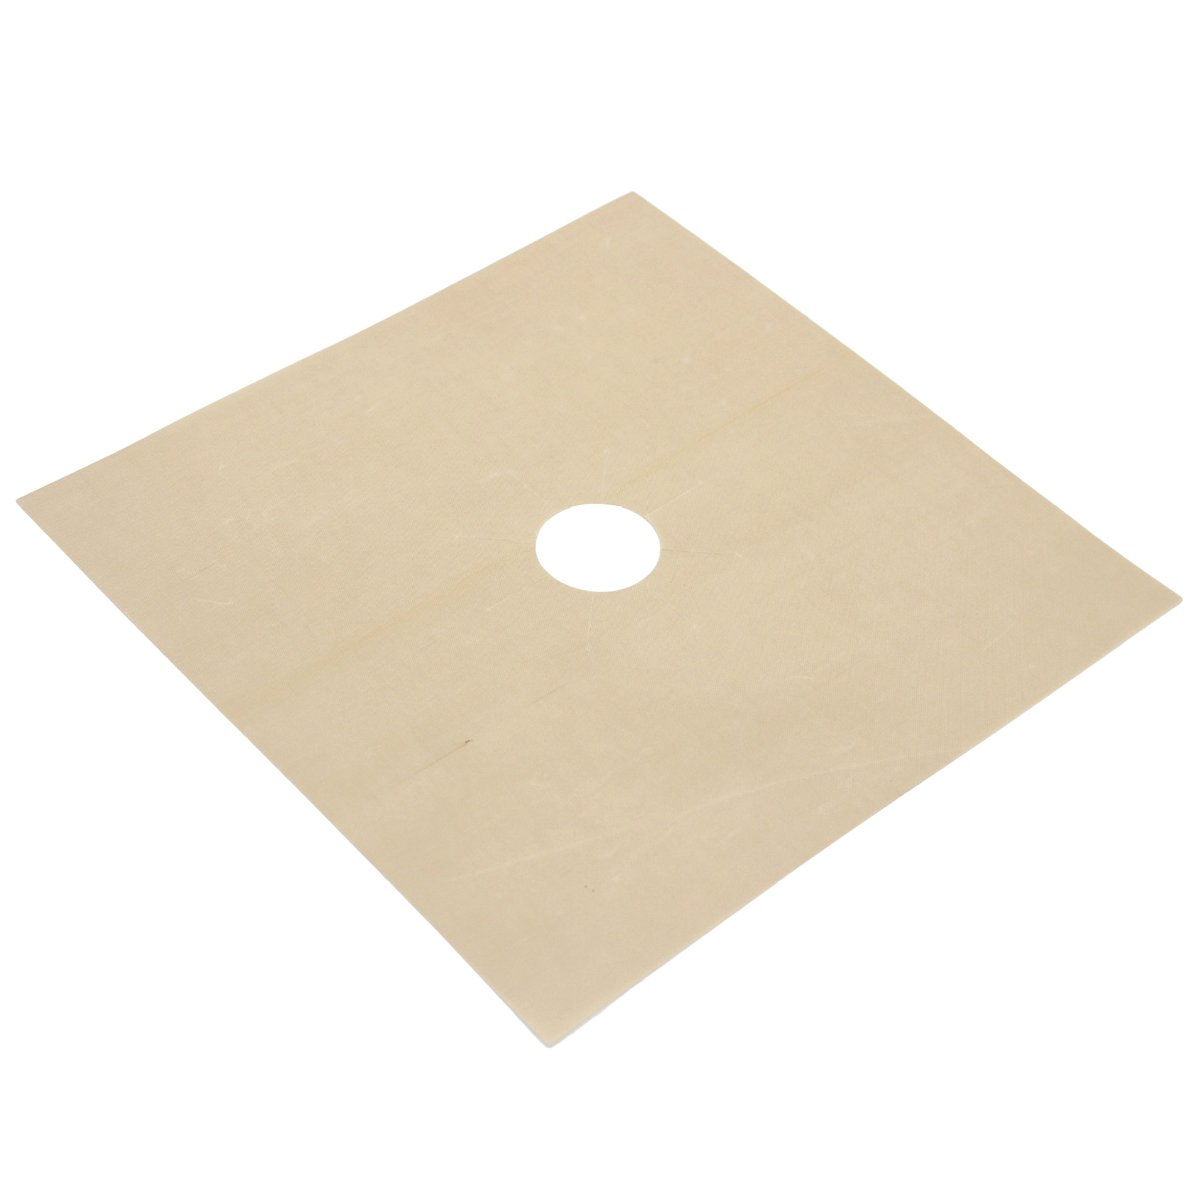 1pcs Universal Heavy Duty Oven Liner Gas Hob Protector Sheets (Beige)